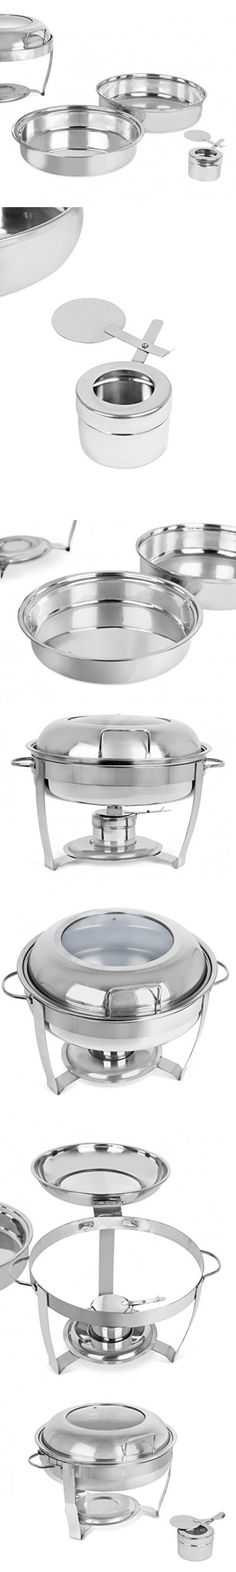 BirdRock Home Stainless Steel Chafing Dish with Glass Lid | 5 Quart | Round Buffet Chafer